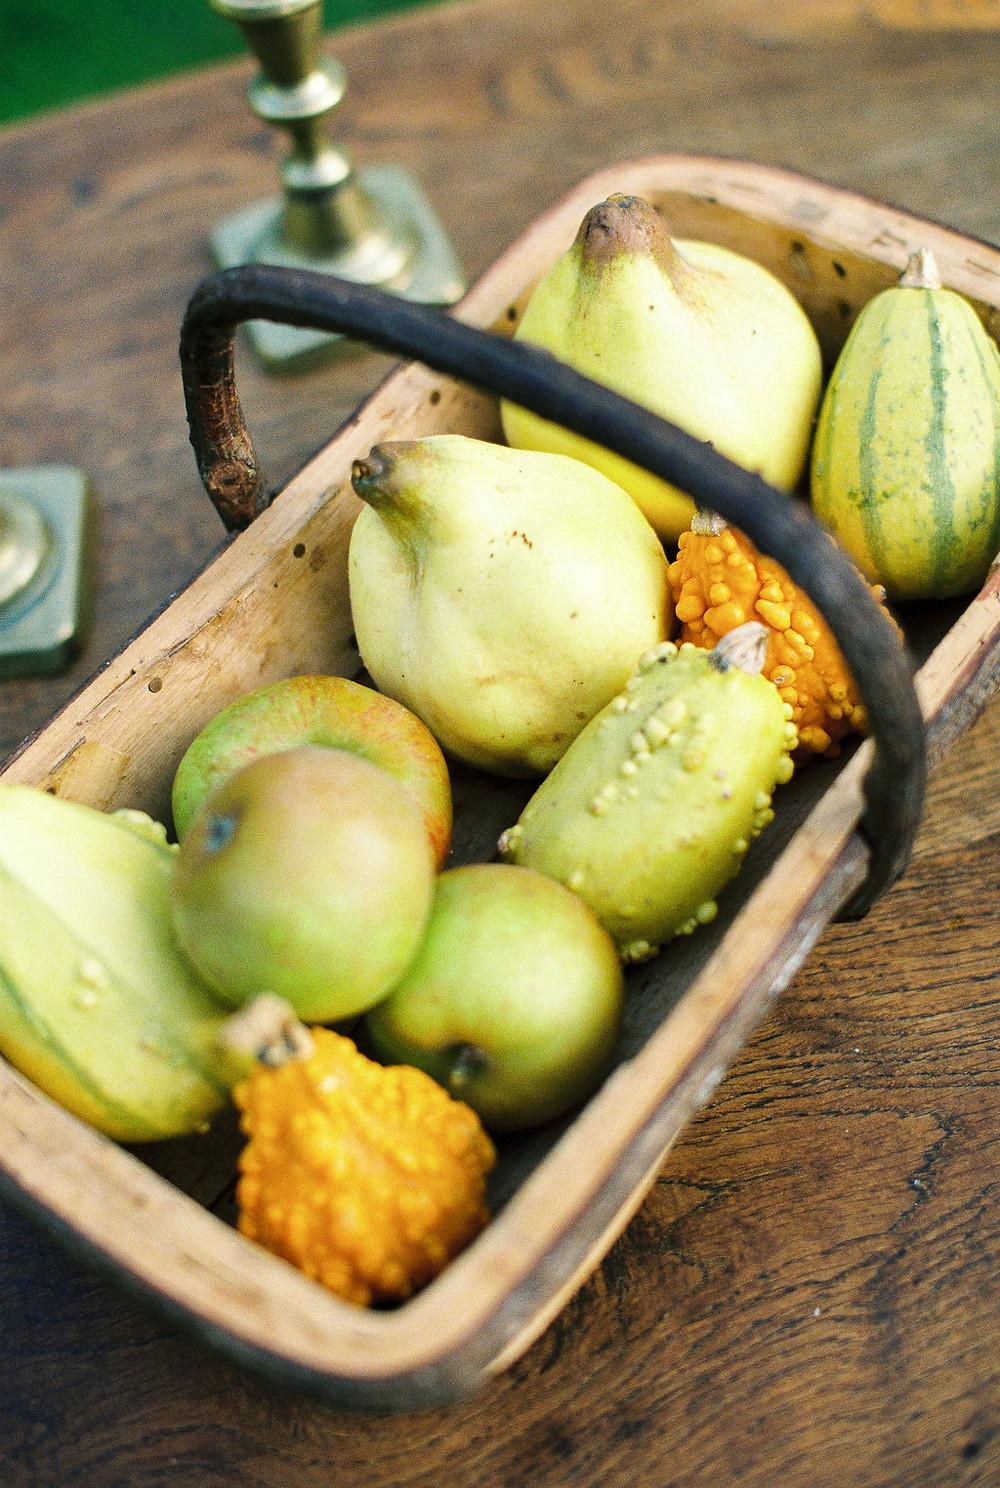 Fruit for an autumnal table setting, Jessica Turner Designs Blog